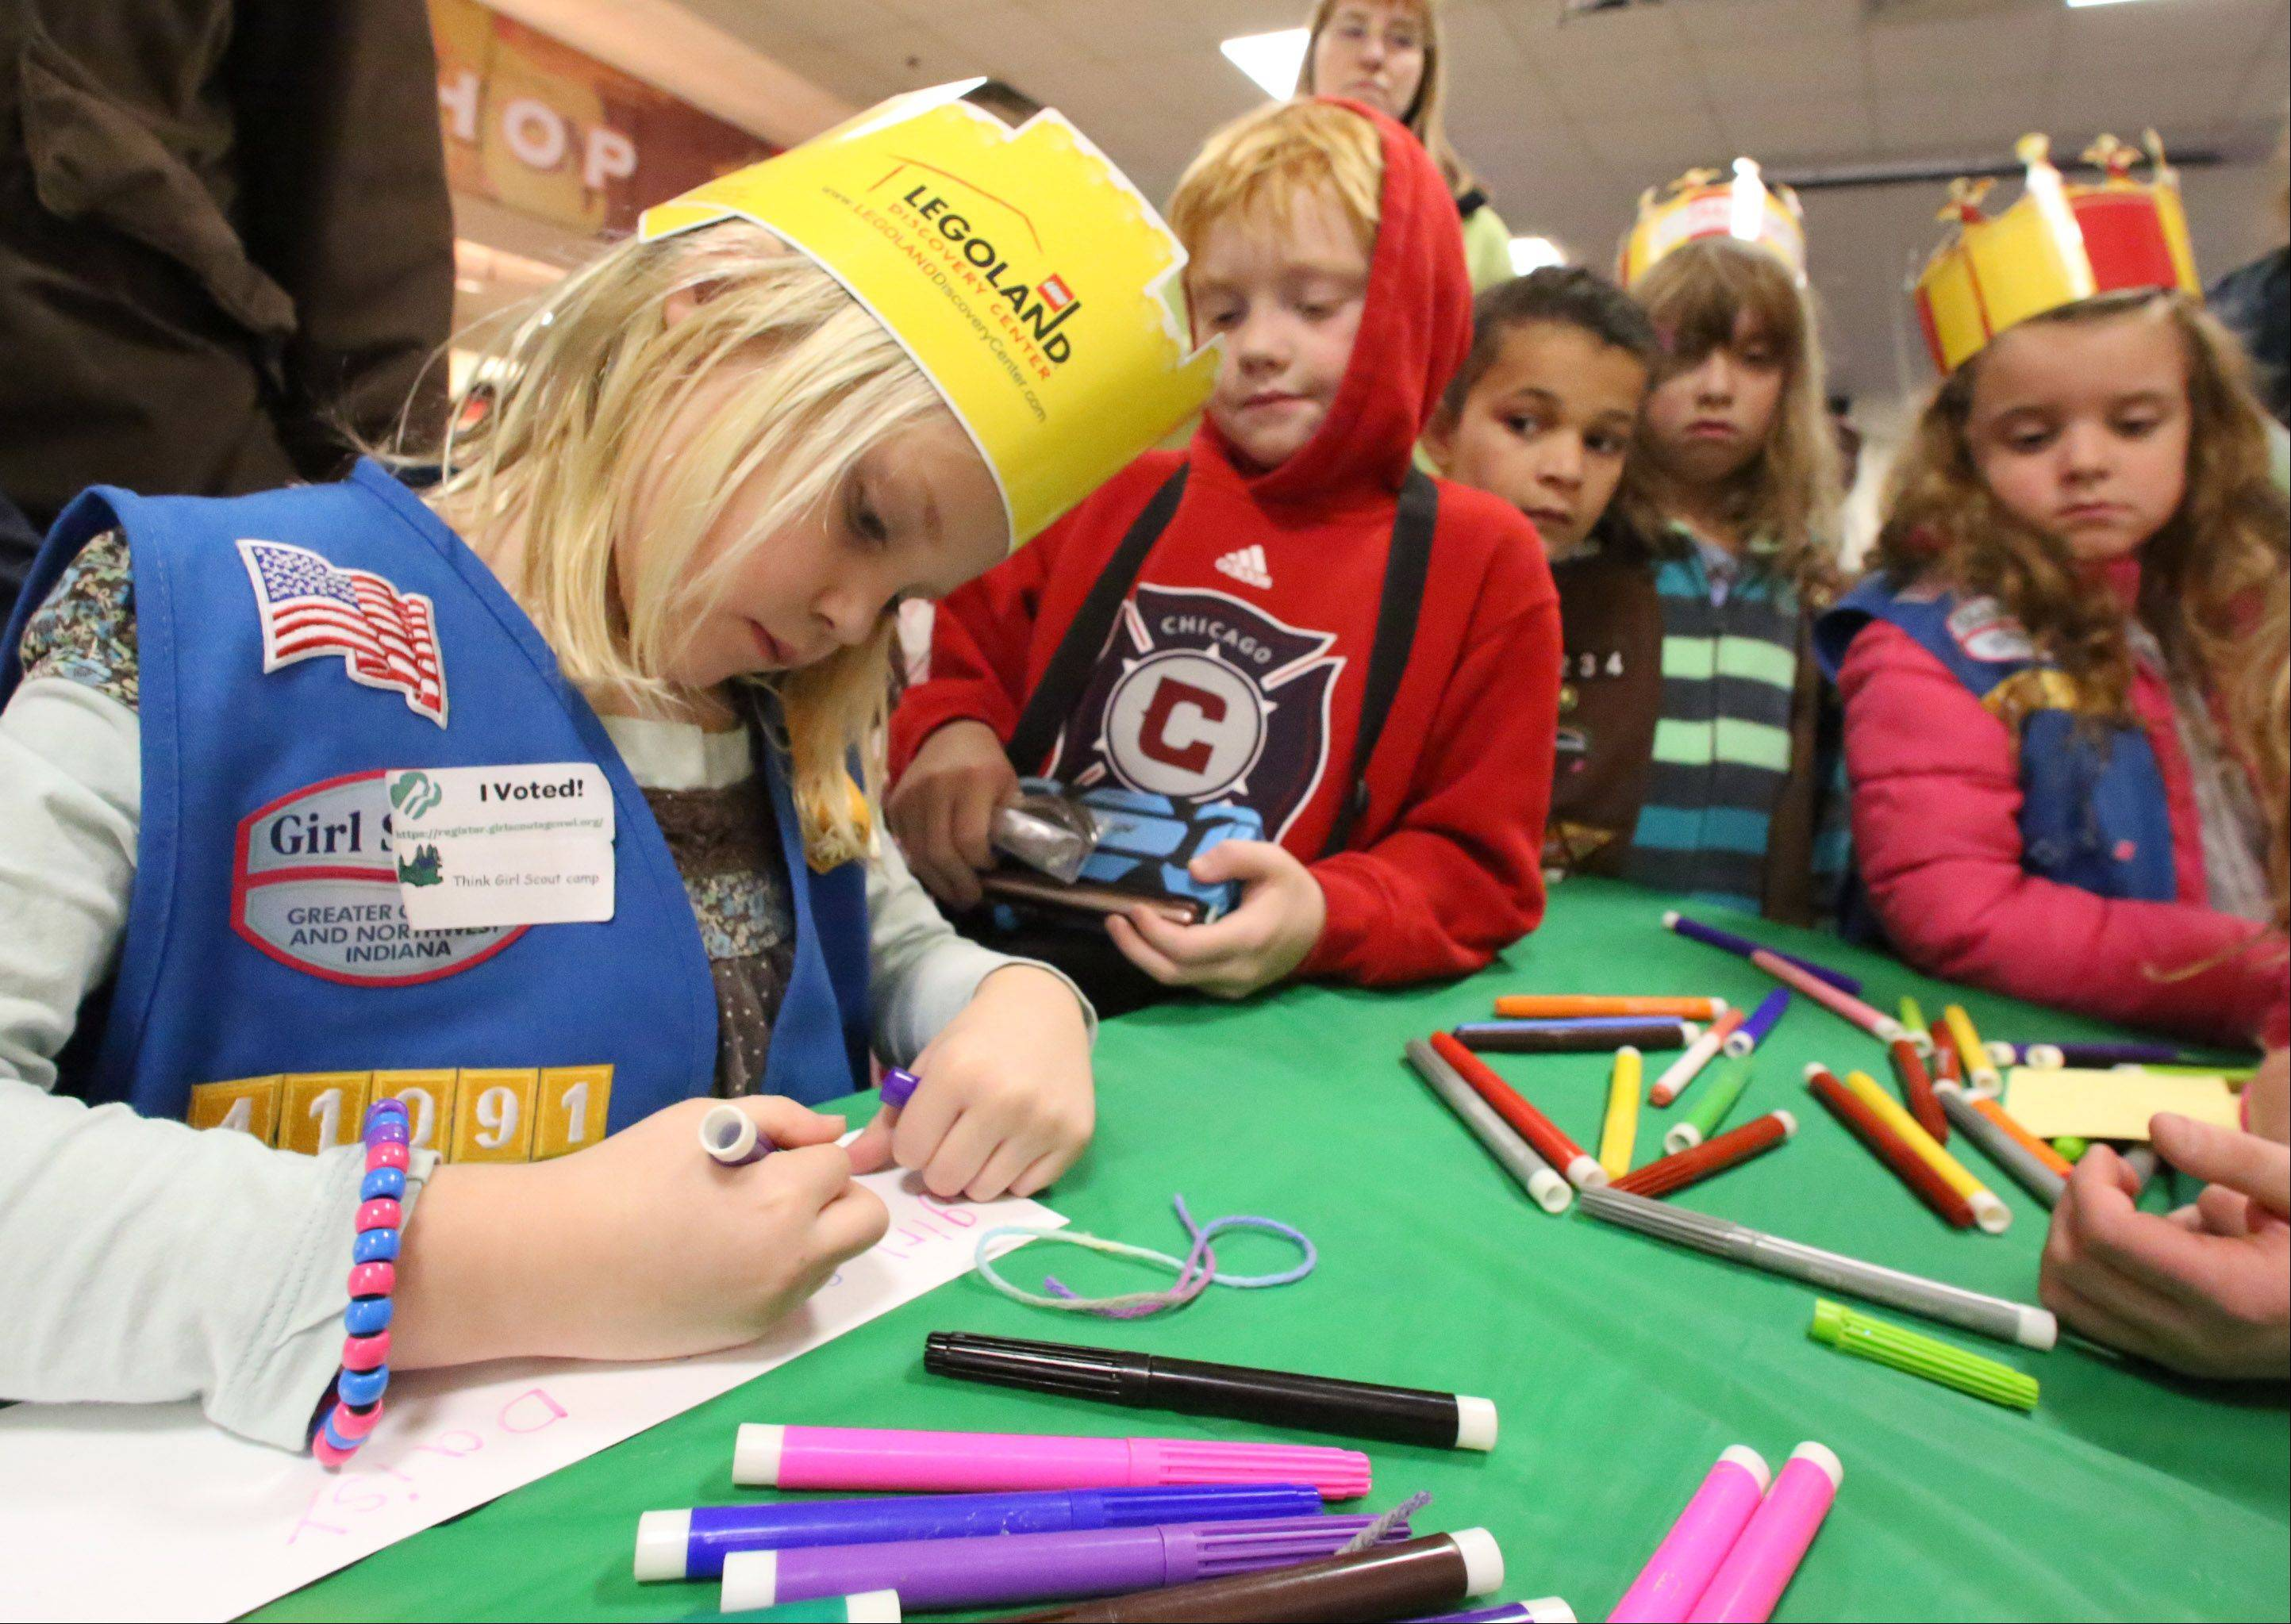 Chloe Eizenga, 6, of Elk Grove Village, with troop 41091, makes a chef hat at the fifth annual Girl Scouts Cookie Kickoff Rally held at Allstate Arena on Saturday in Rosemont.